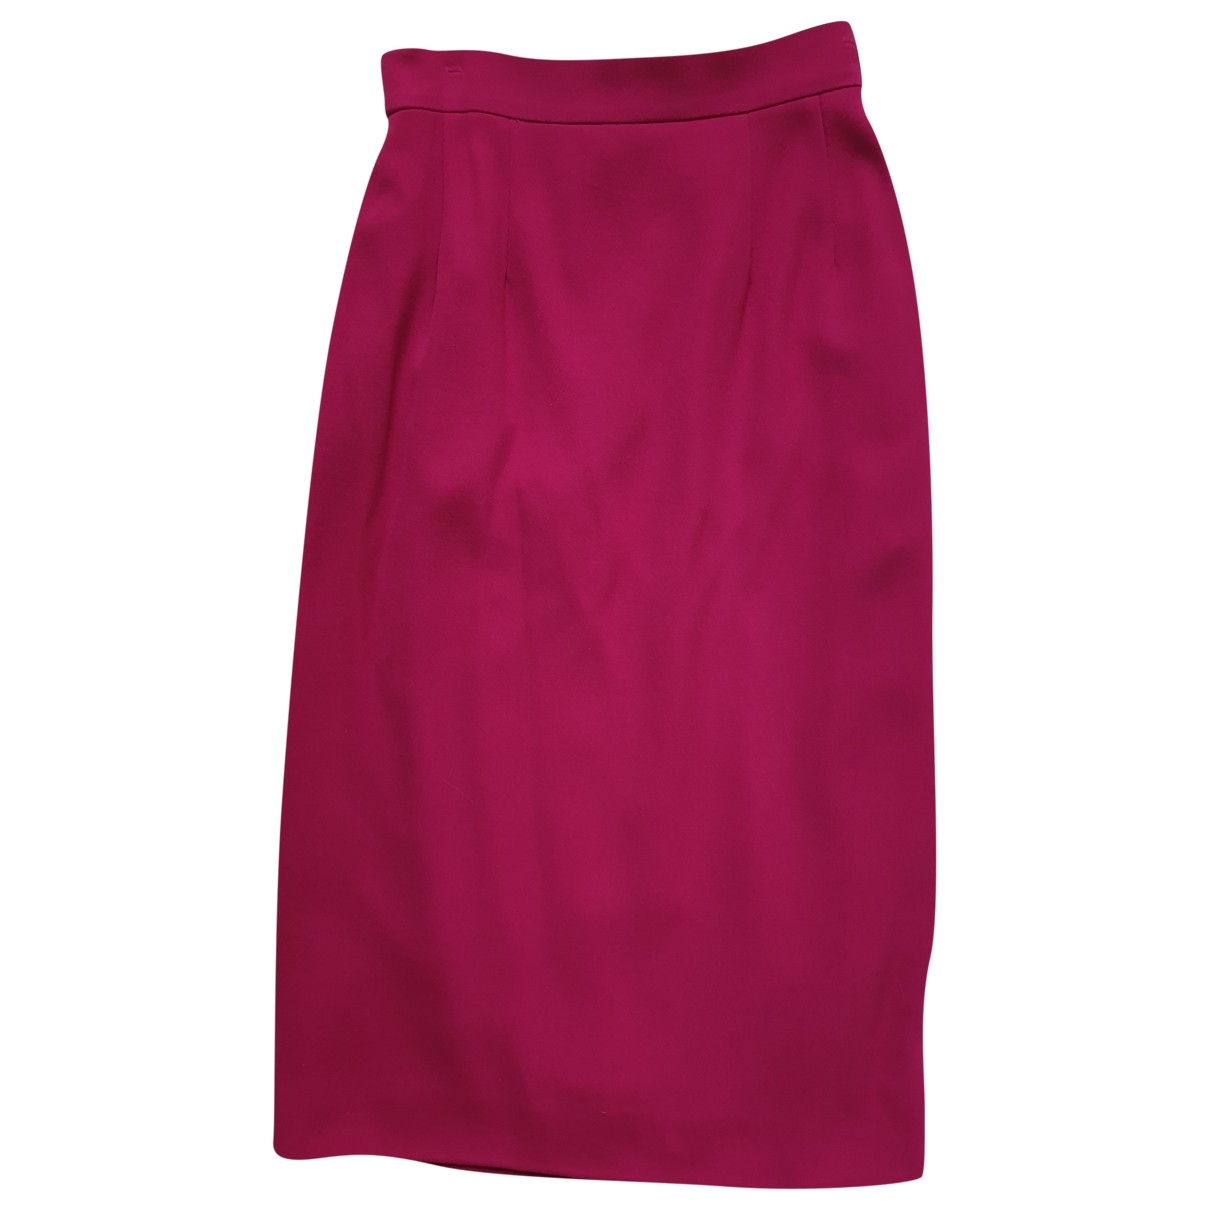 Celine \N Pink Wool skirt for Women 36 FR